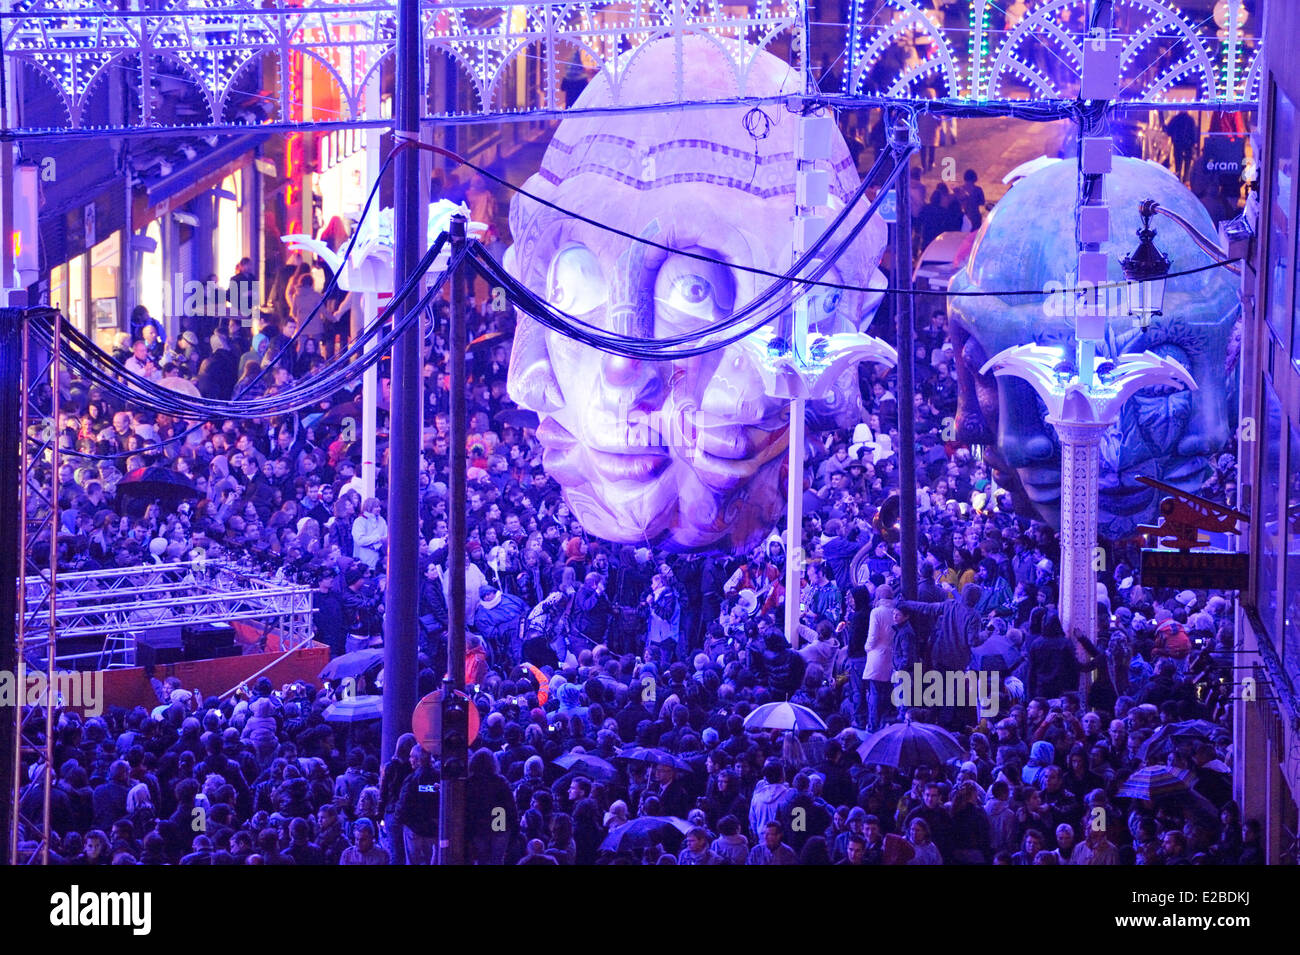 France, Nord, Lille, Lille 3000 Fantastic, parade of opening by night, parade of giant masks - Stock Image